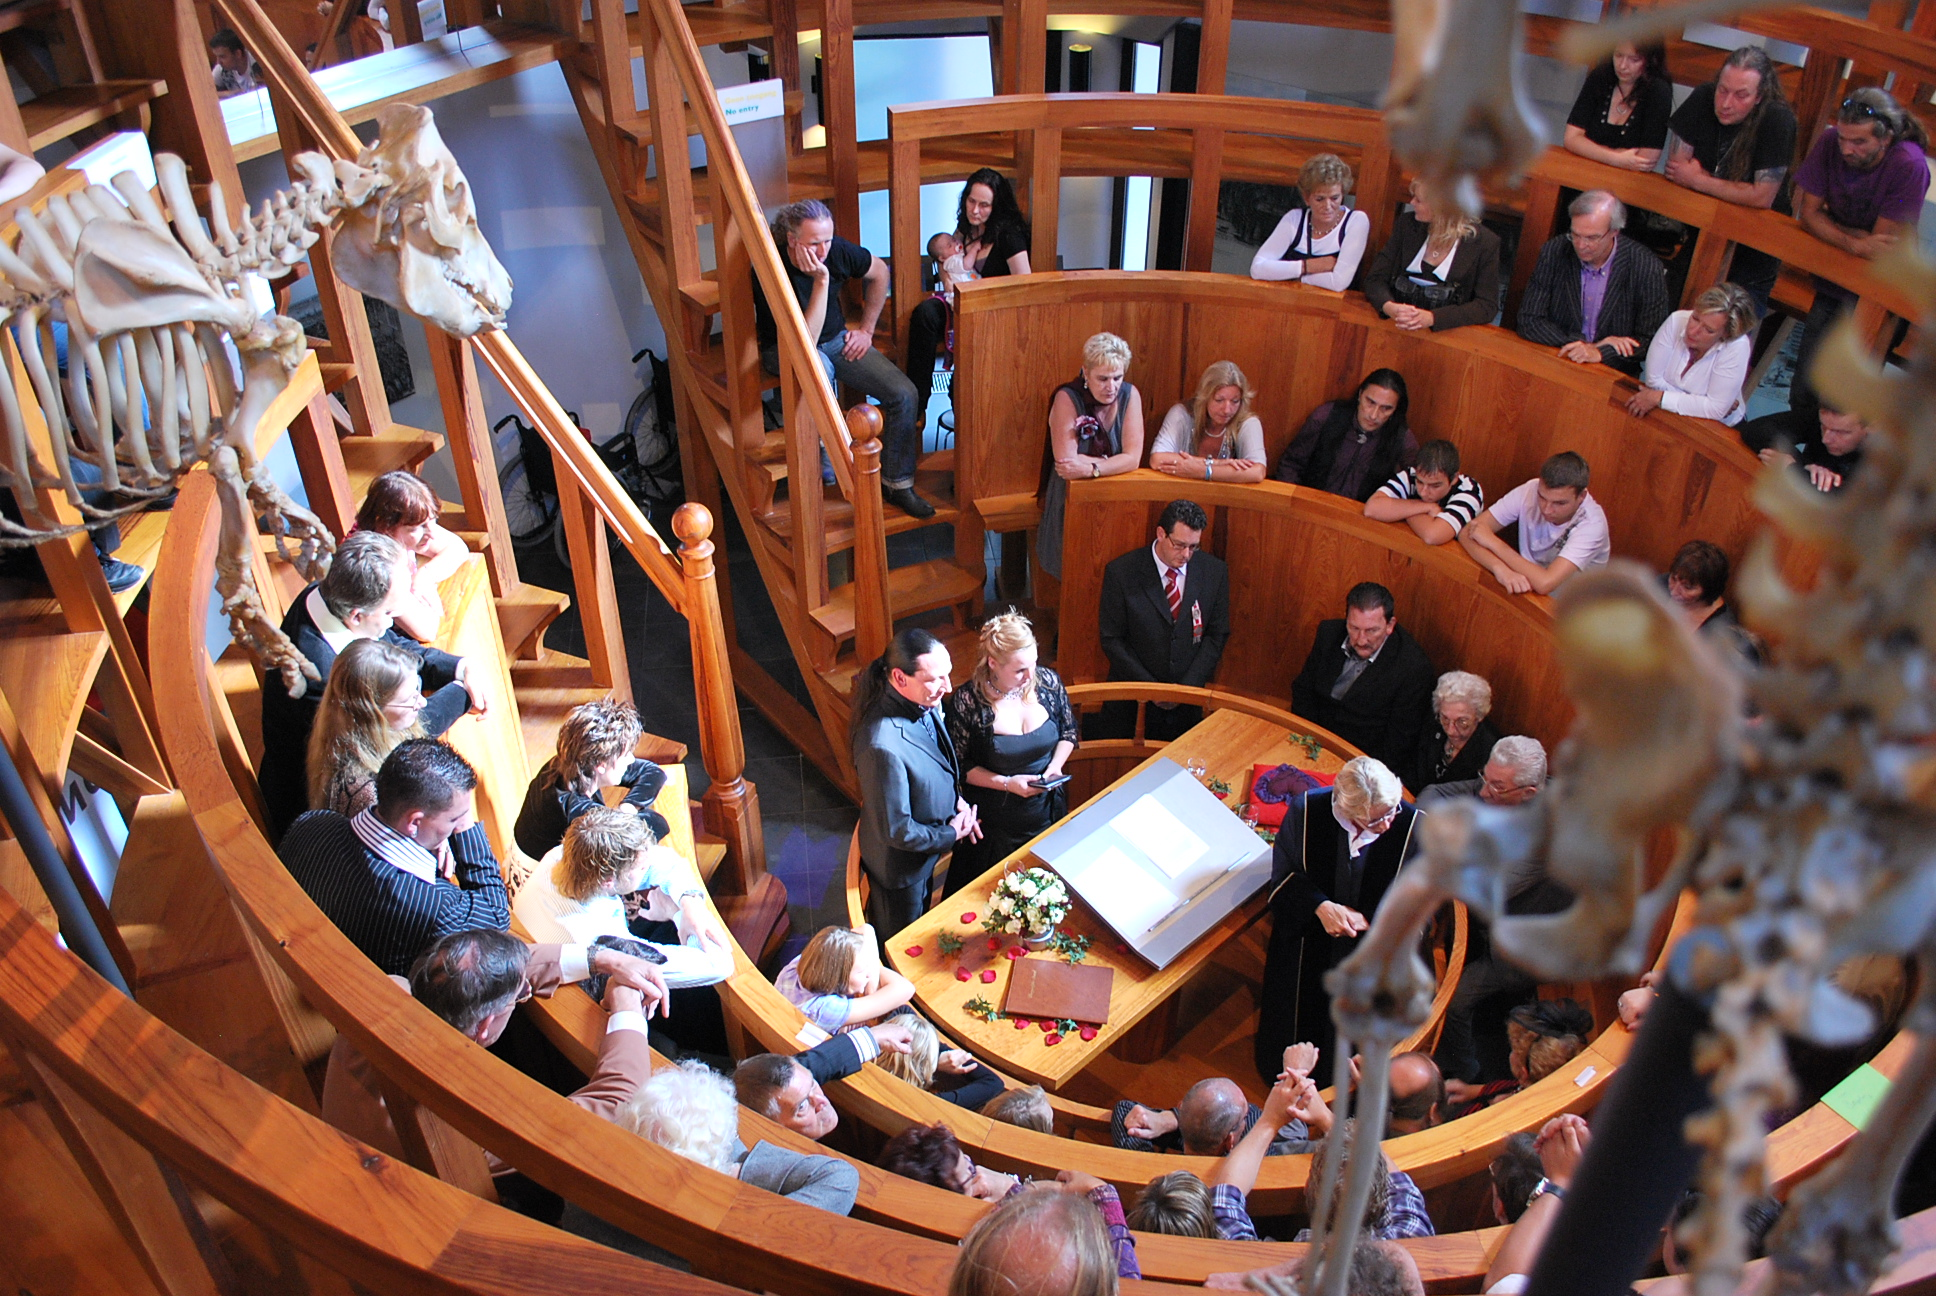 Morbid Anatomy: Wedding at the Anatomical Theatre! Museum Boerhaave ...